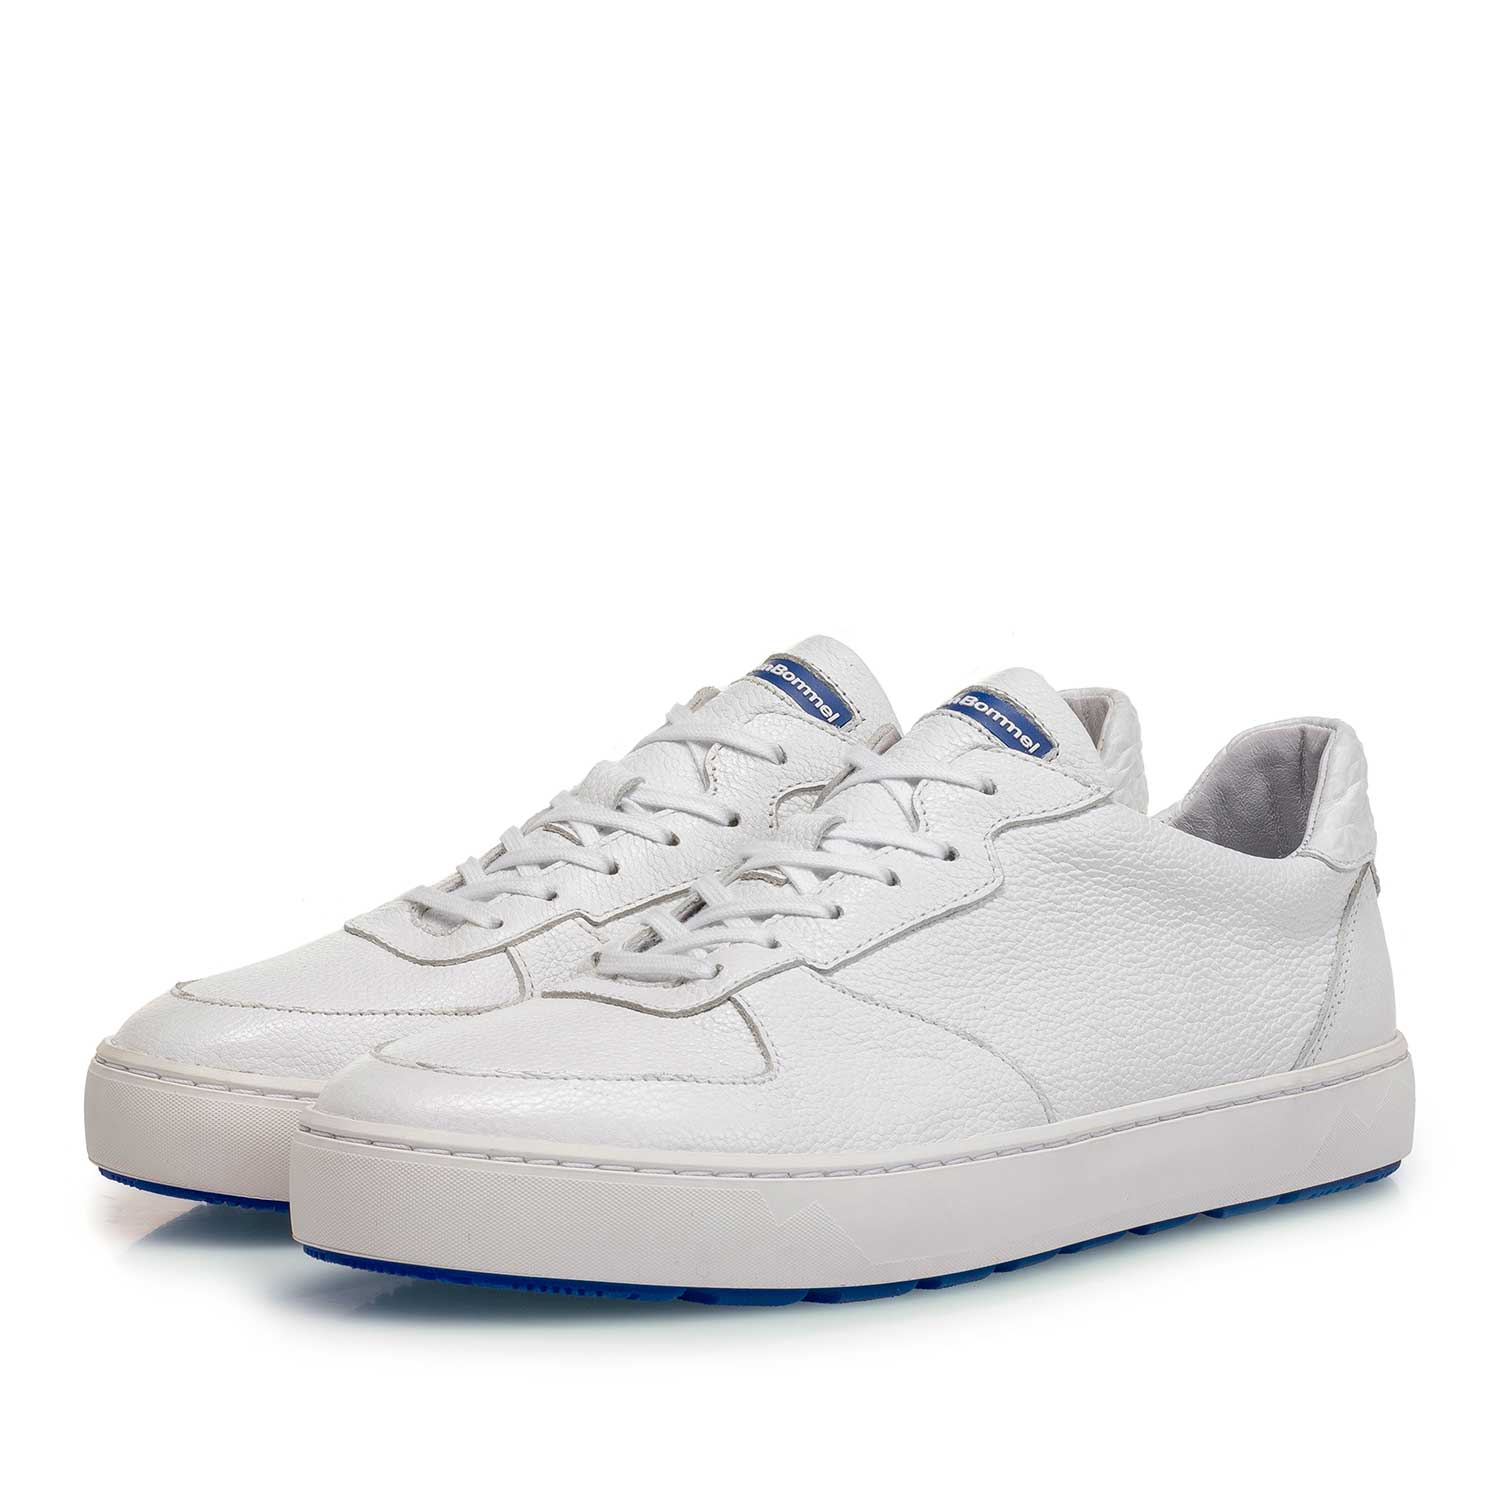 85272/16 - White slightly structured calf leather sneaker